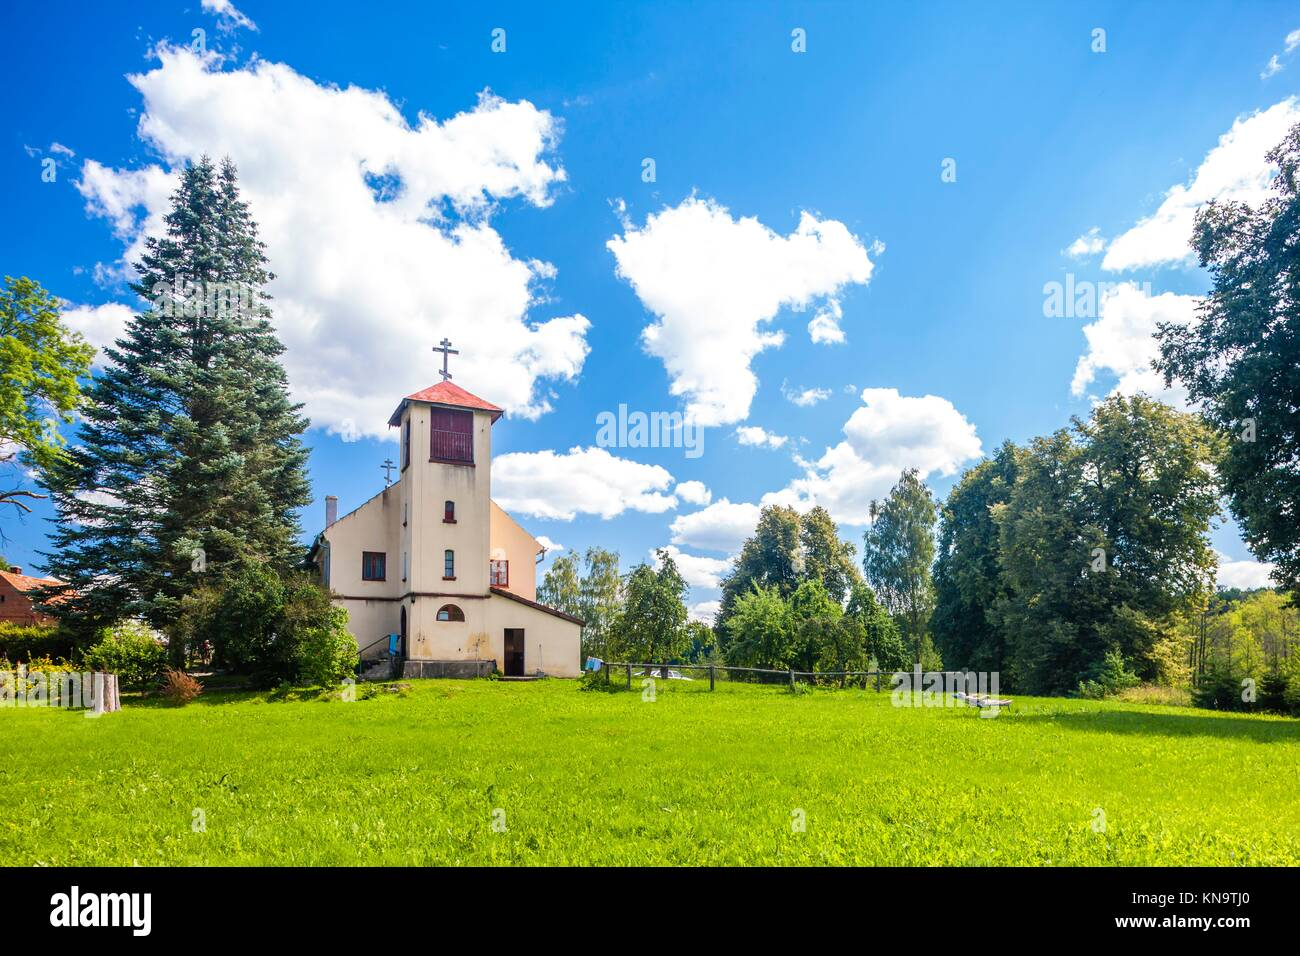 Monastery of the Old Believers, Wojnowo, Warmian-Masurian Voivodeship, Poland. - Stock Image